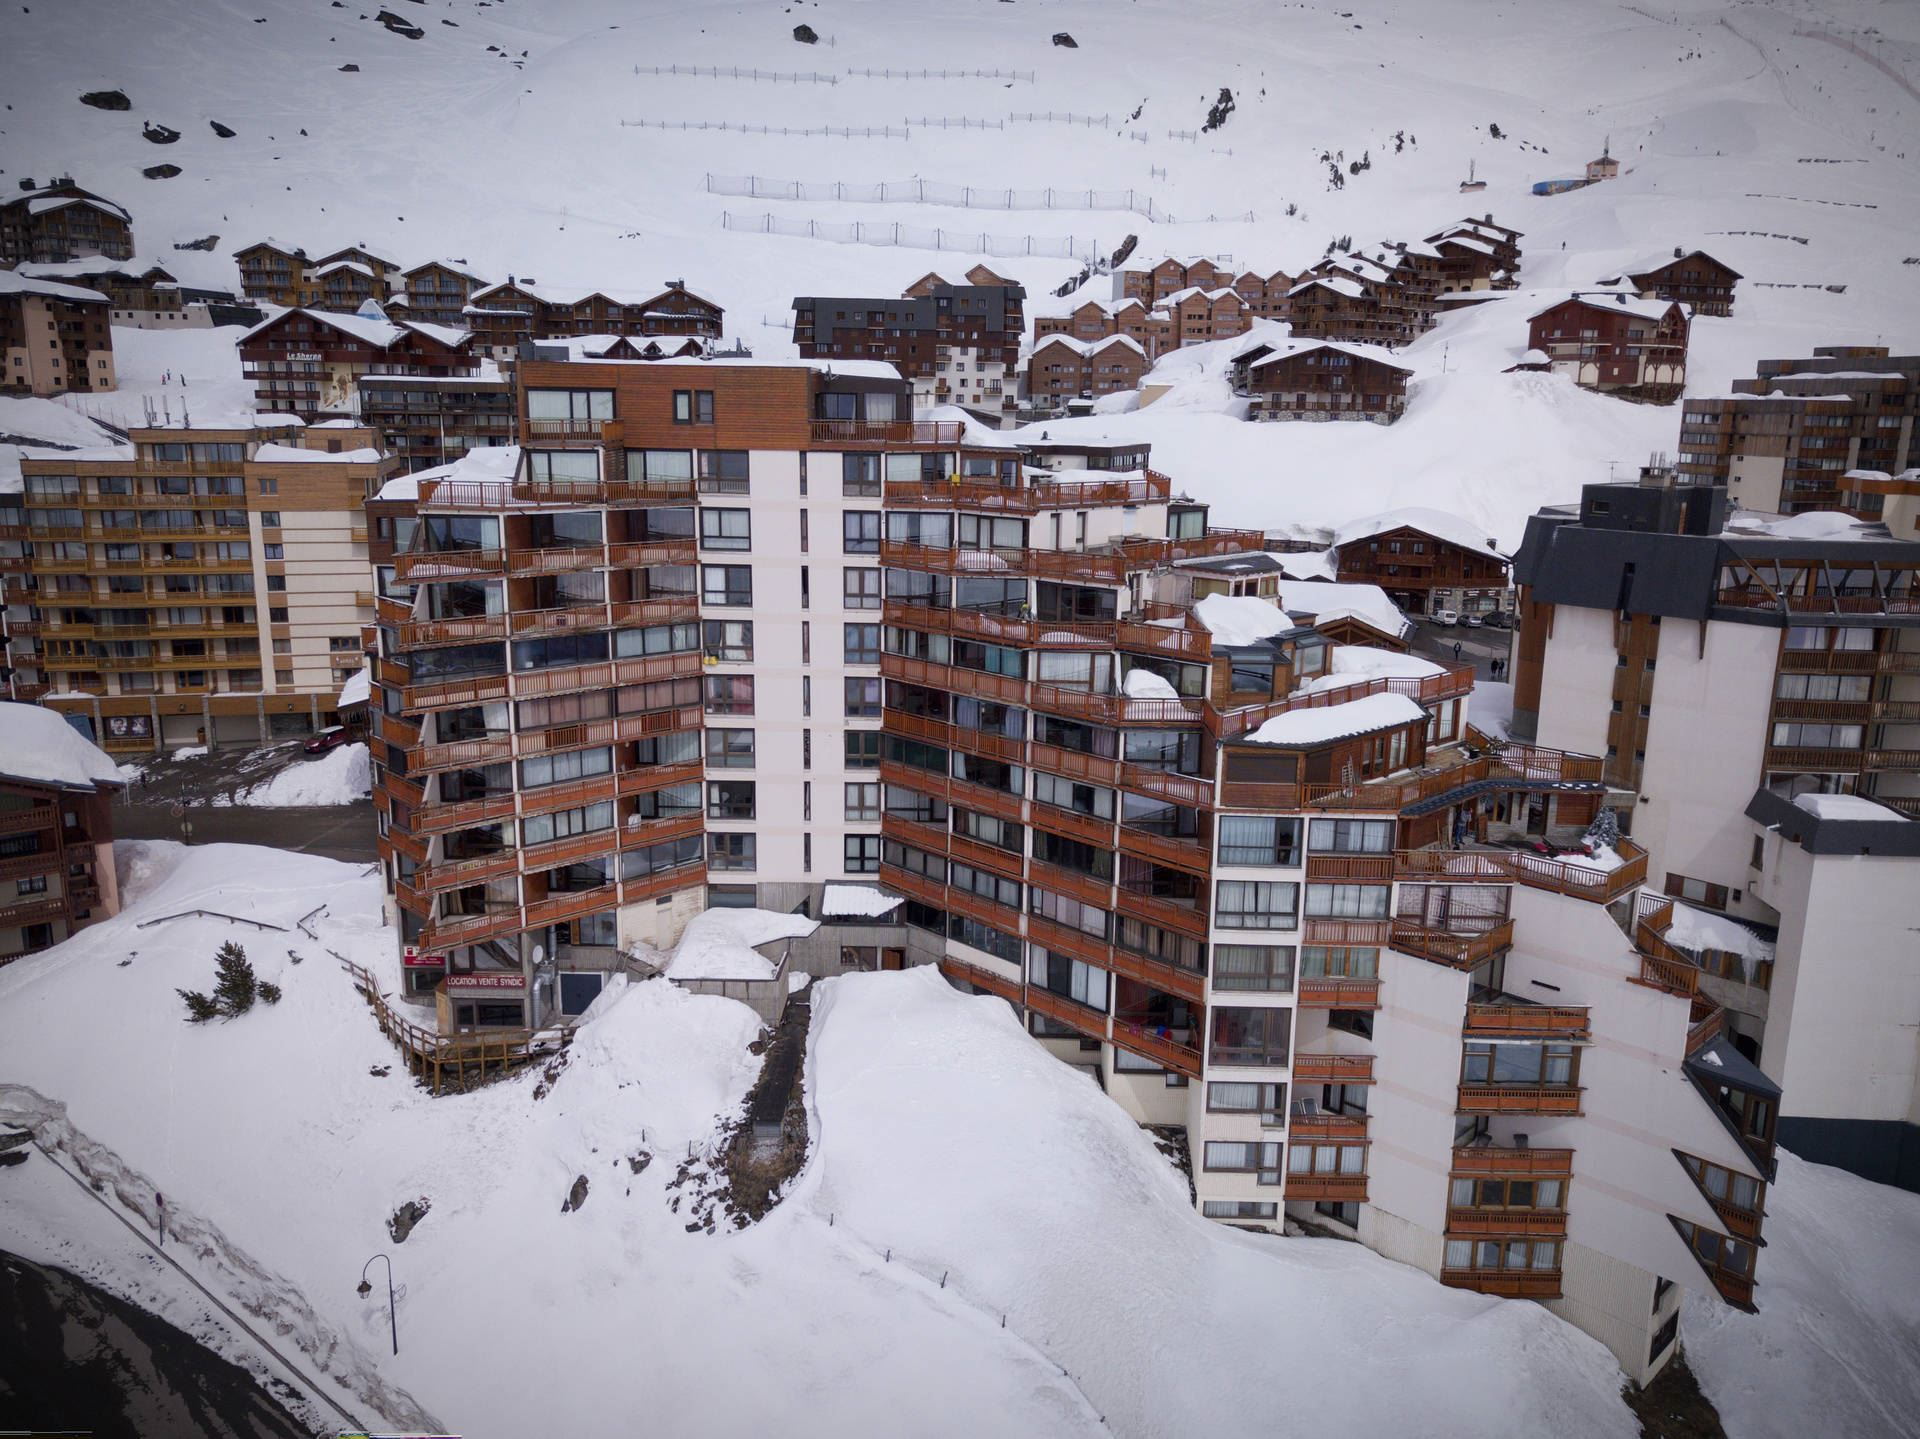 TROIS VALLEES 908 / APARTMENT 2 ROOMS 4 PERSONS - 1 BRONZE SNOWFLAKE - VTI